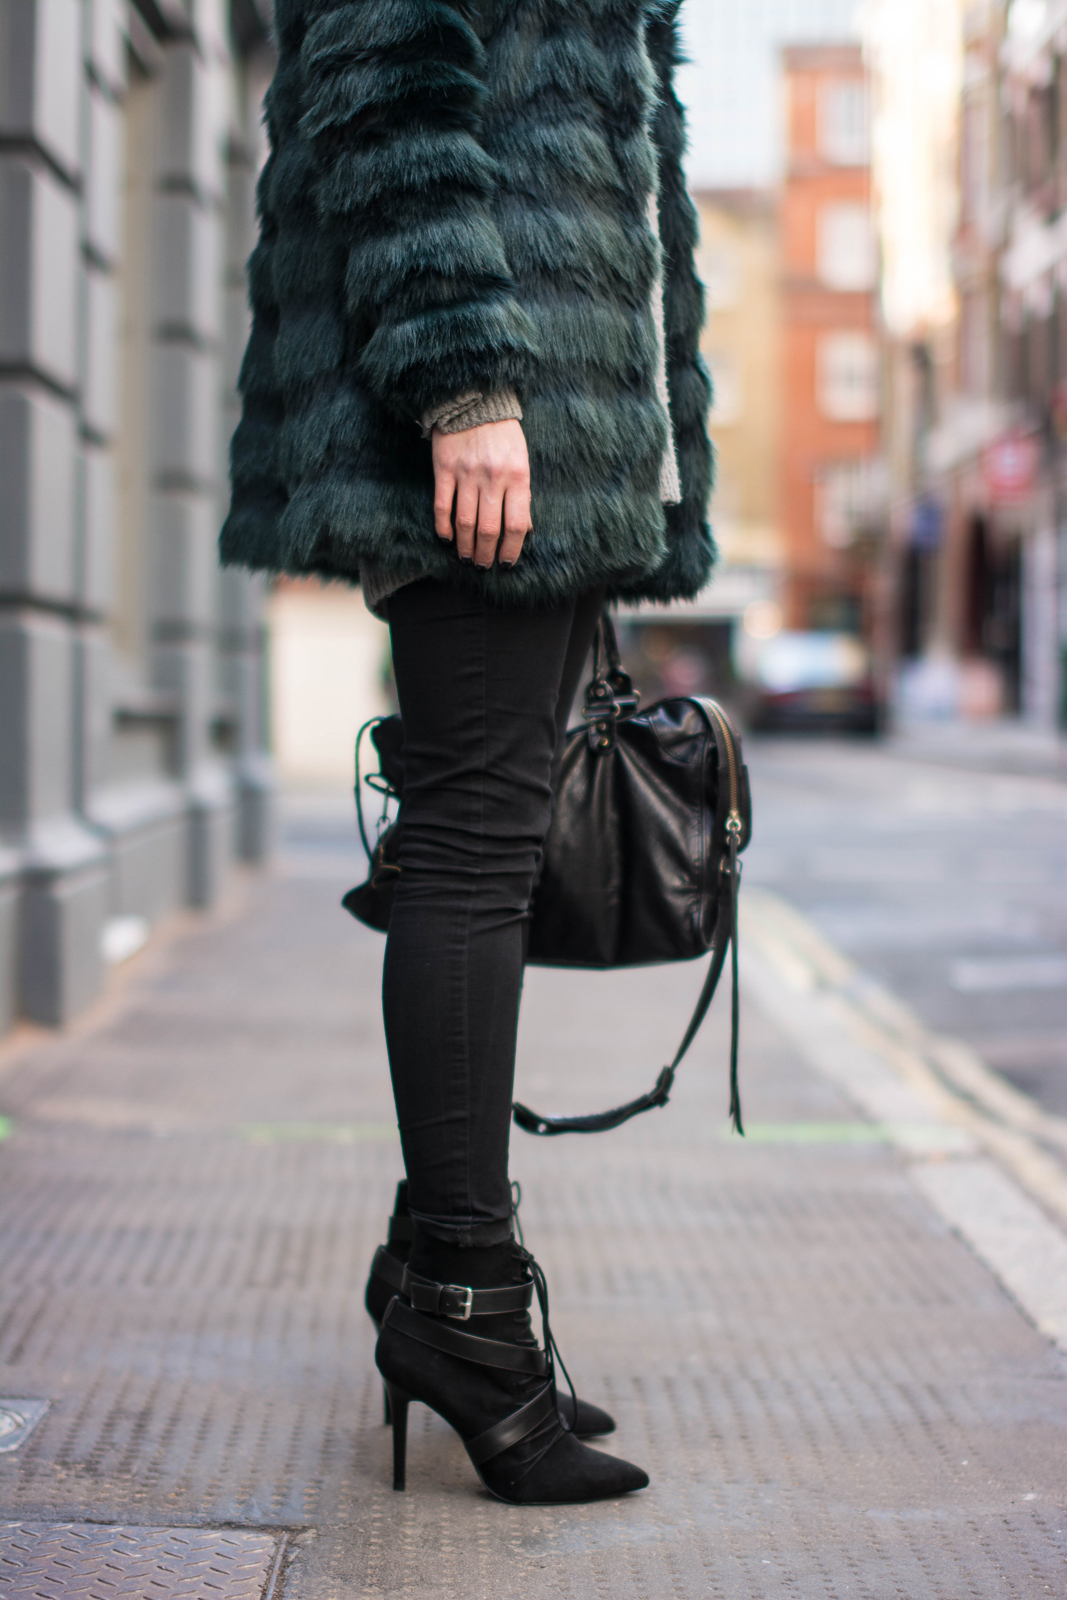 EJSTYLE - Fashion Union teal green faux fur coat, balenciaga classic city bag, Black skinny jeans, Zara lace up ankle boots SS15, winter outfit, influential fashion bloggers